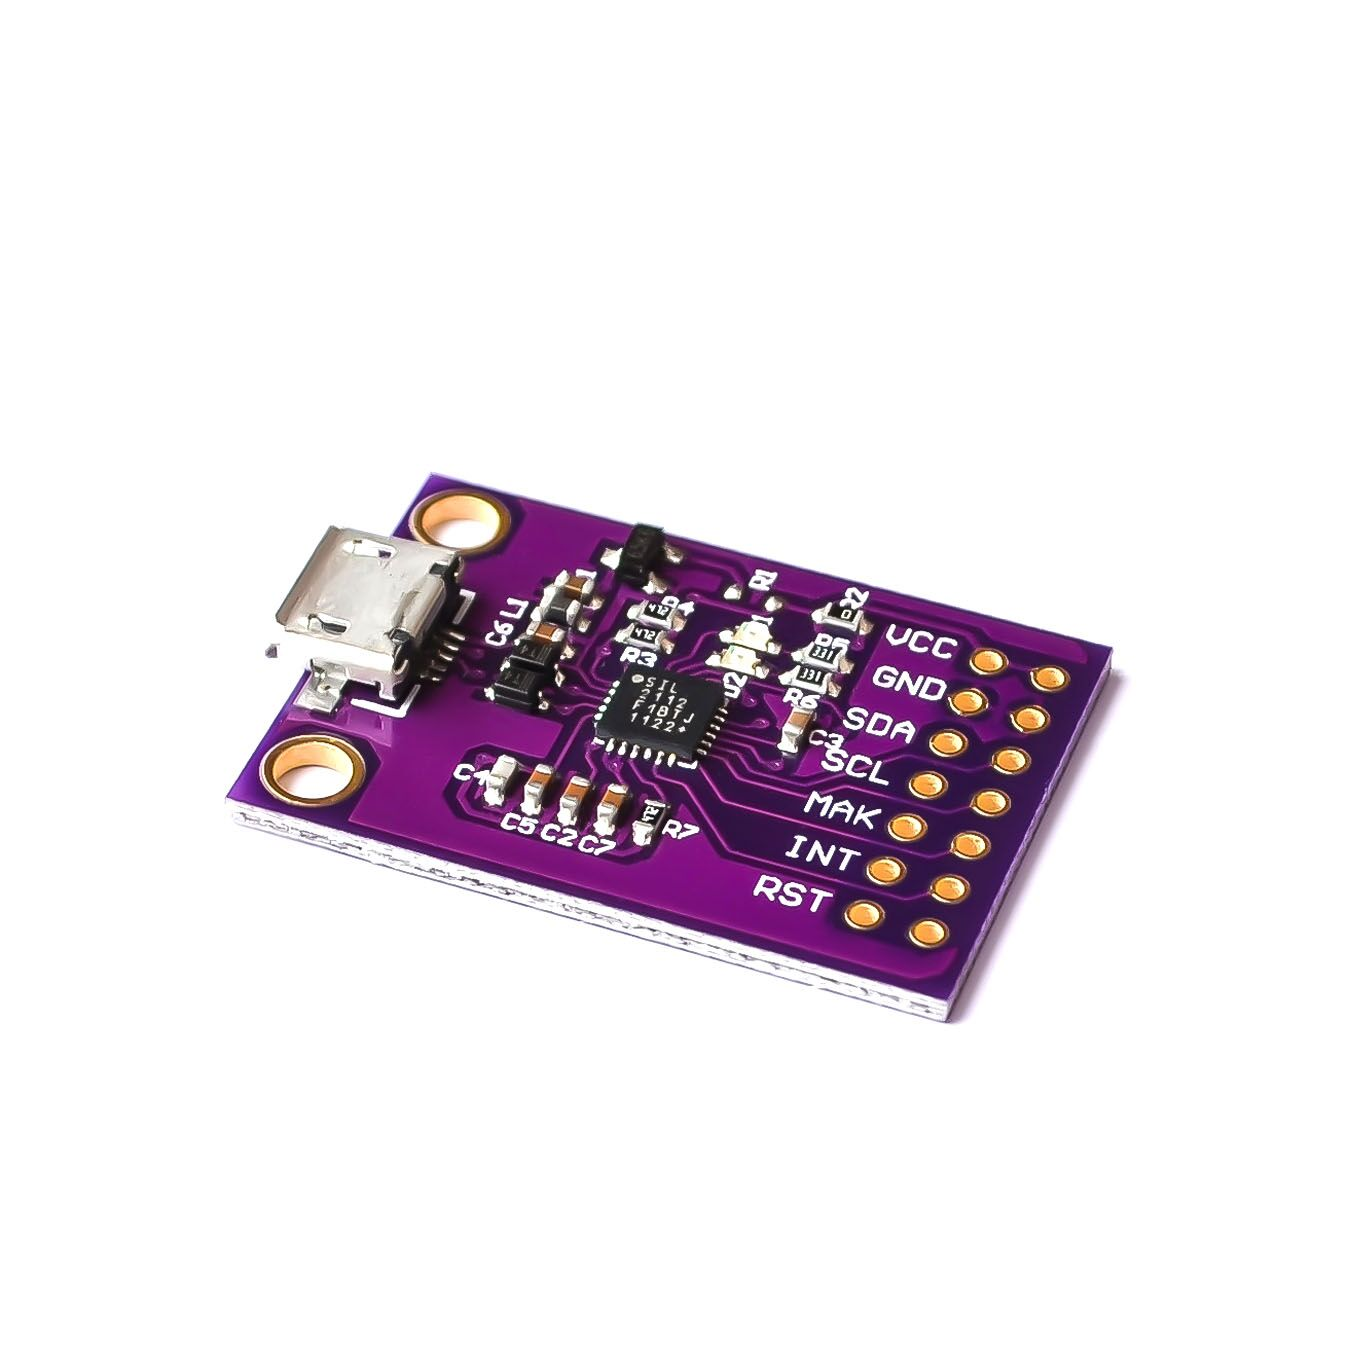 2112 CP2112 Evaluation kit for the CCS811 Debug board USB to I2C communication2112 CP2112 Evaluation kit for the CCS811 Debug board USB to I2C communication